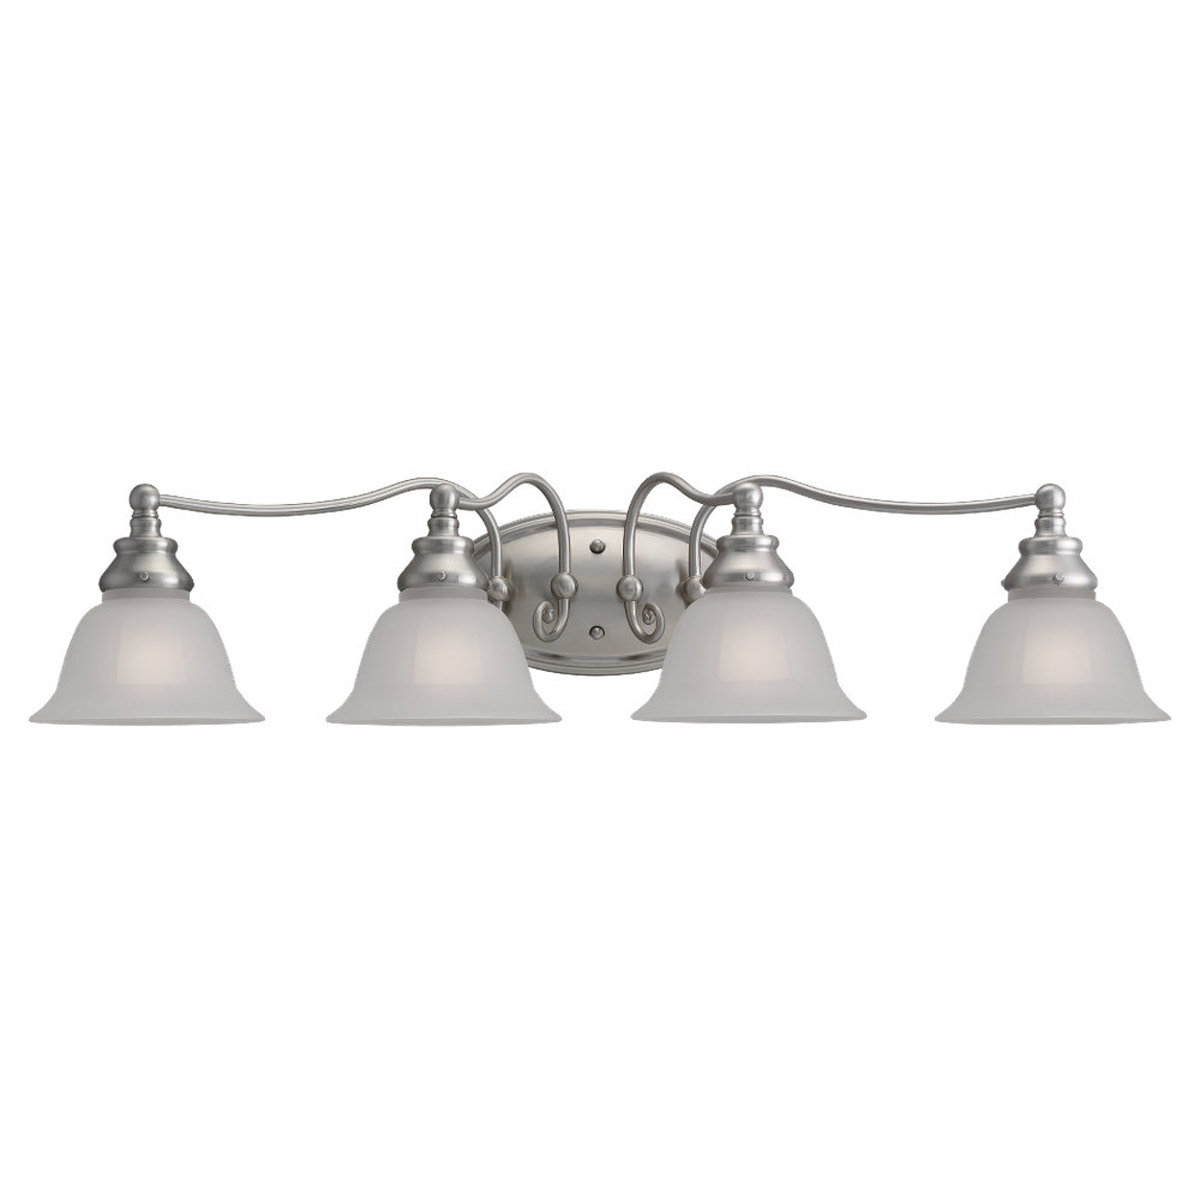 Sea Gull Lighting Canterbury 4 Light Bath Vanity in Brushed Nickel 44653-962 photo